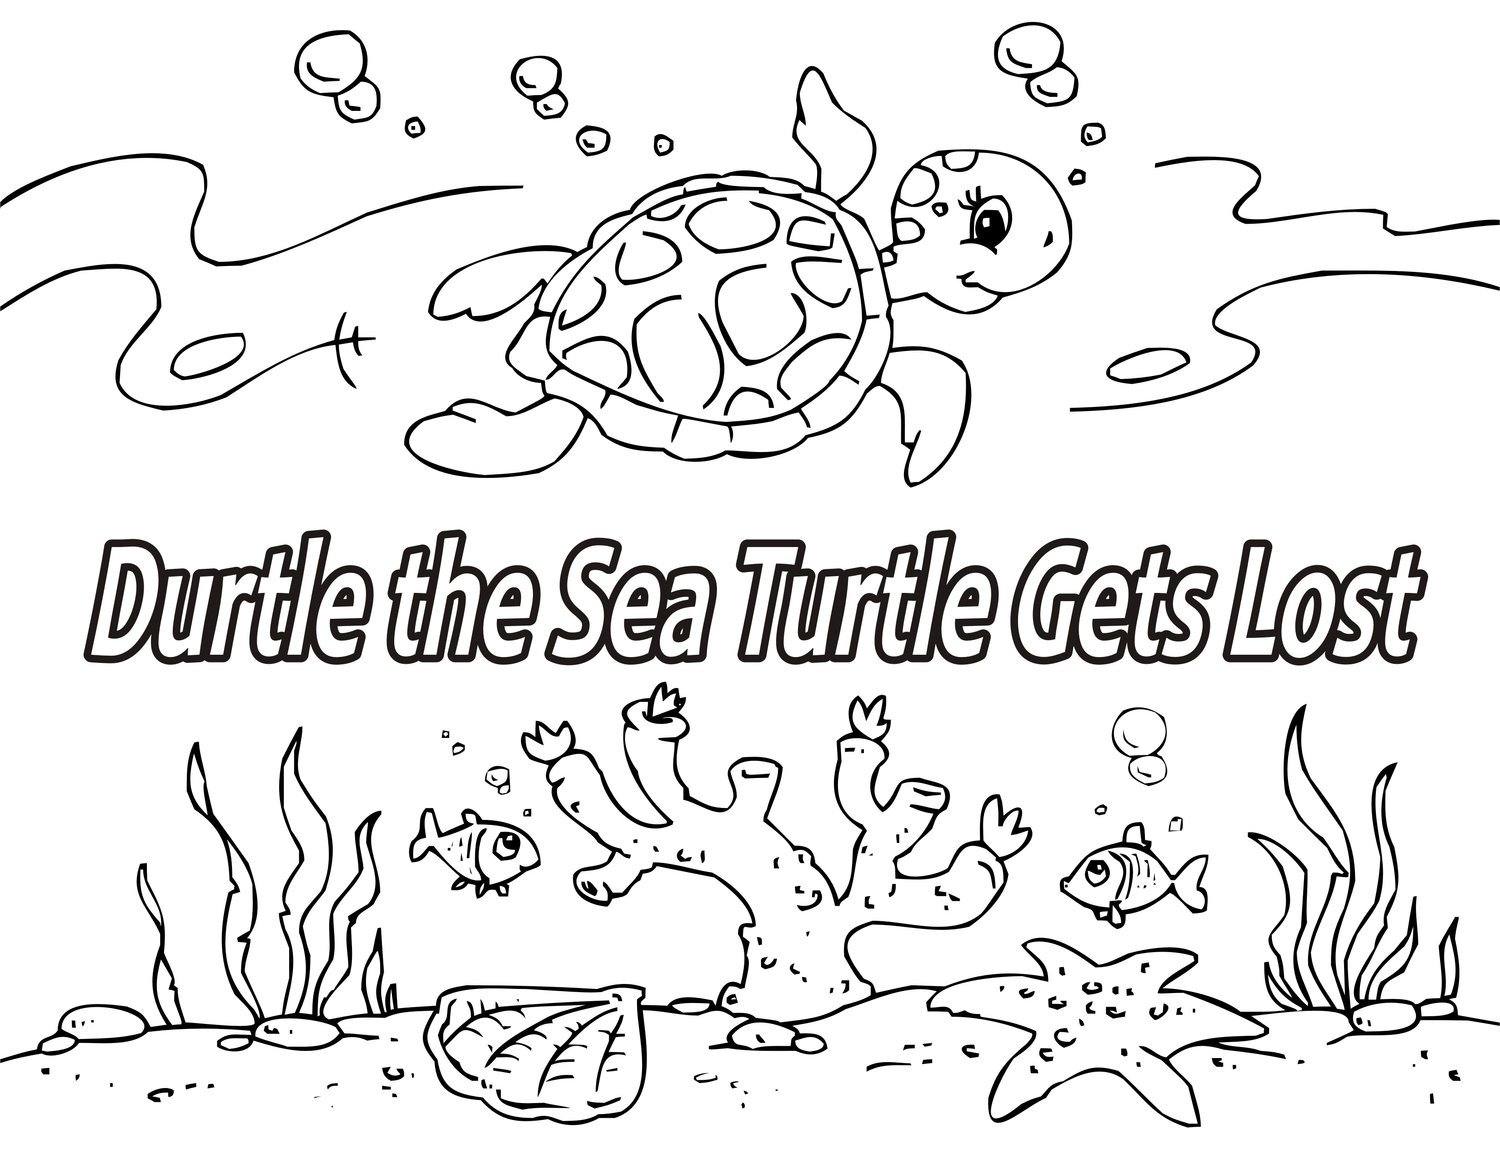 Coloring Storybook / Durtle the Sea Turtle Gets Lost